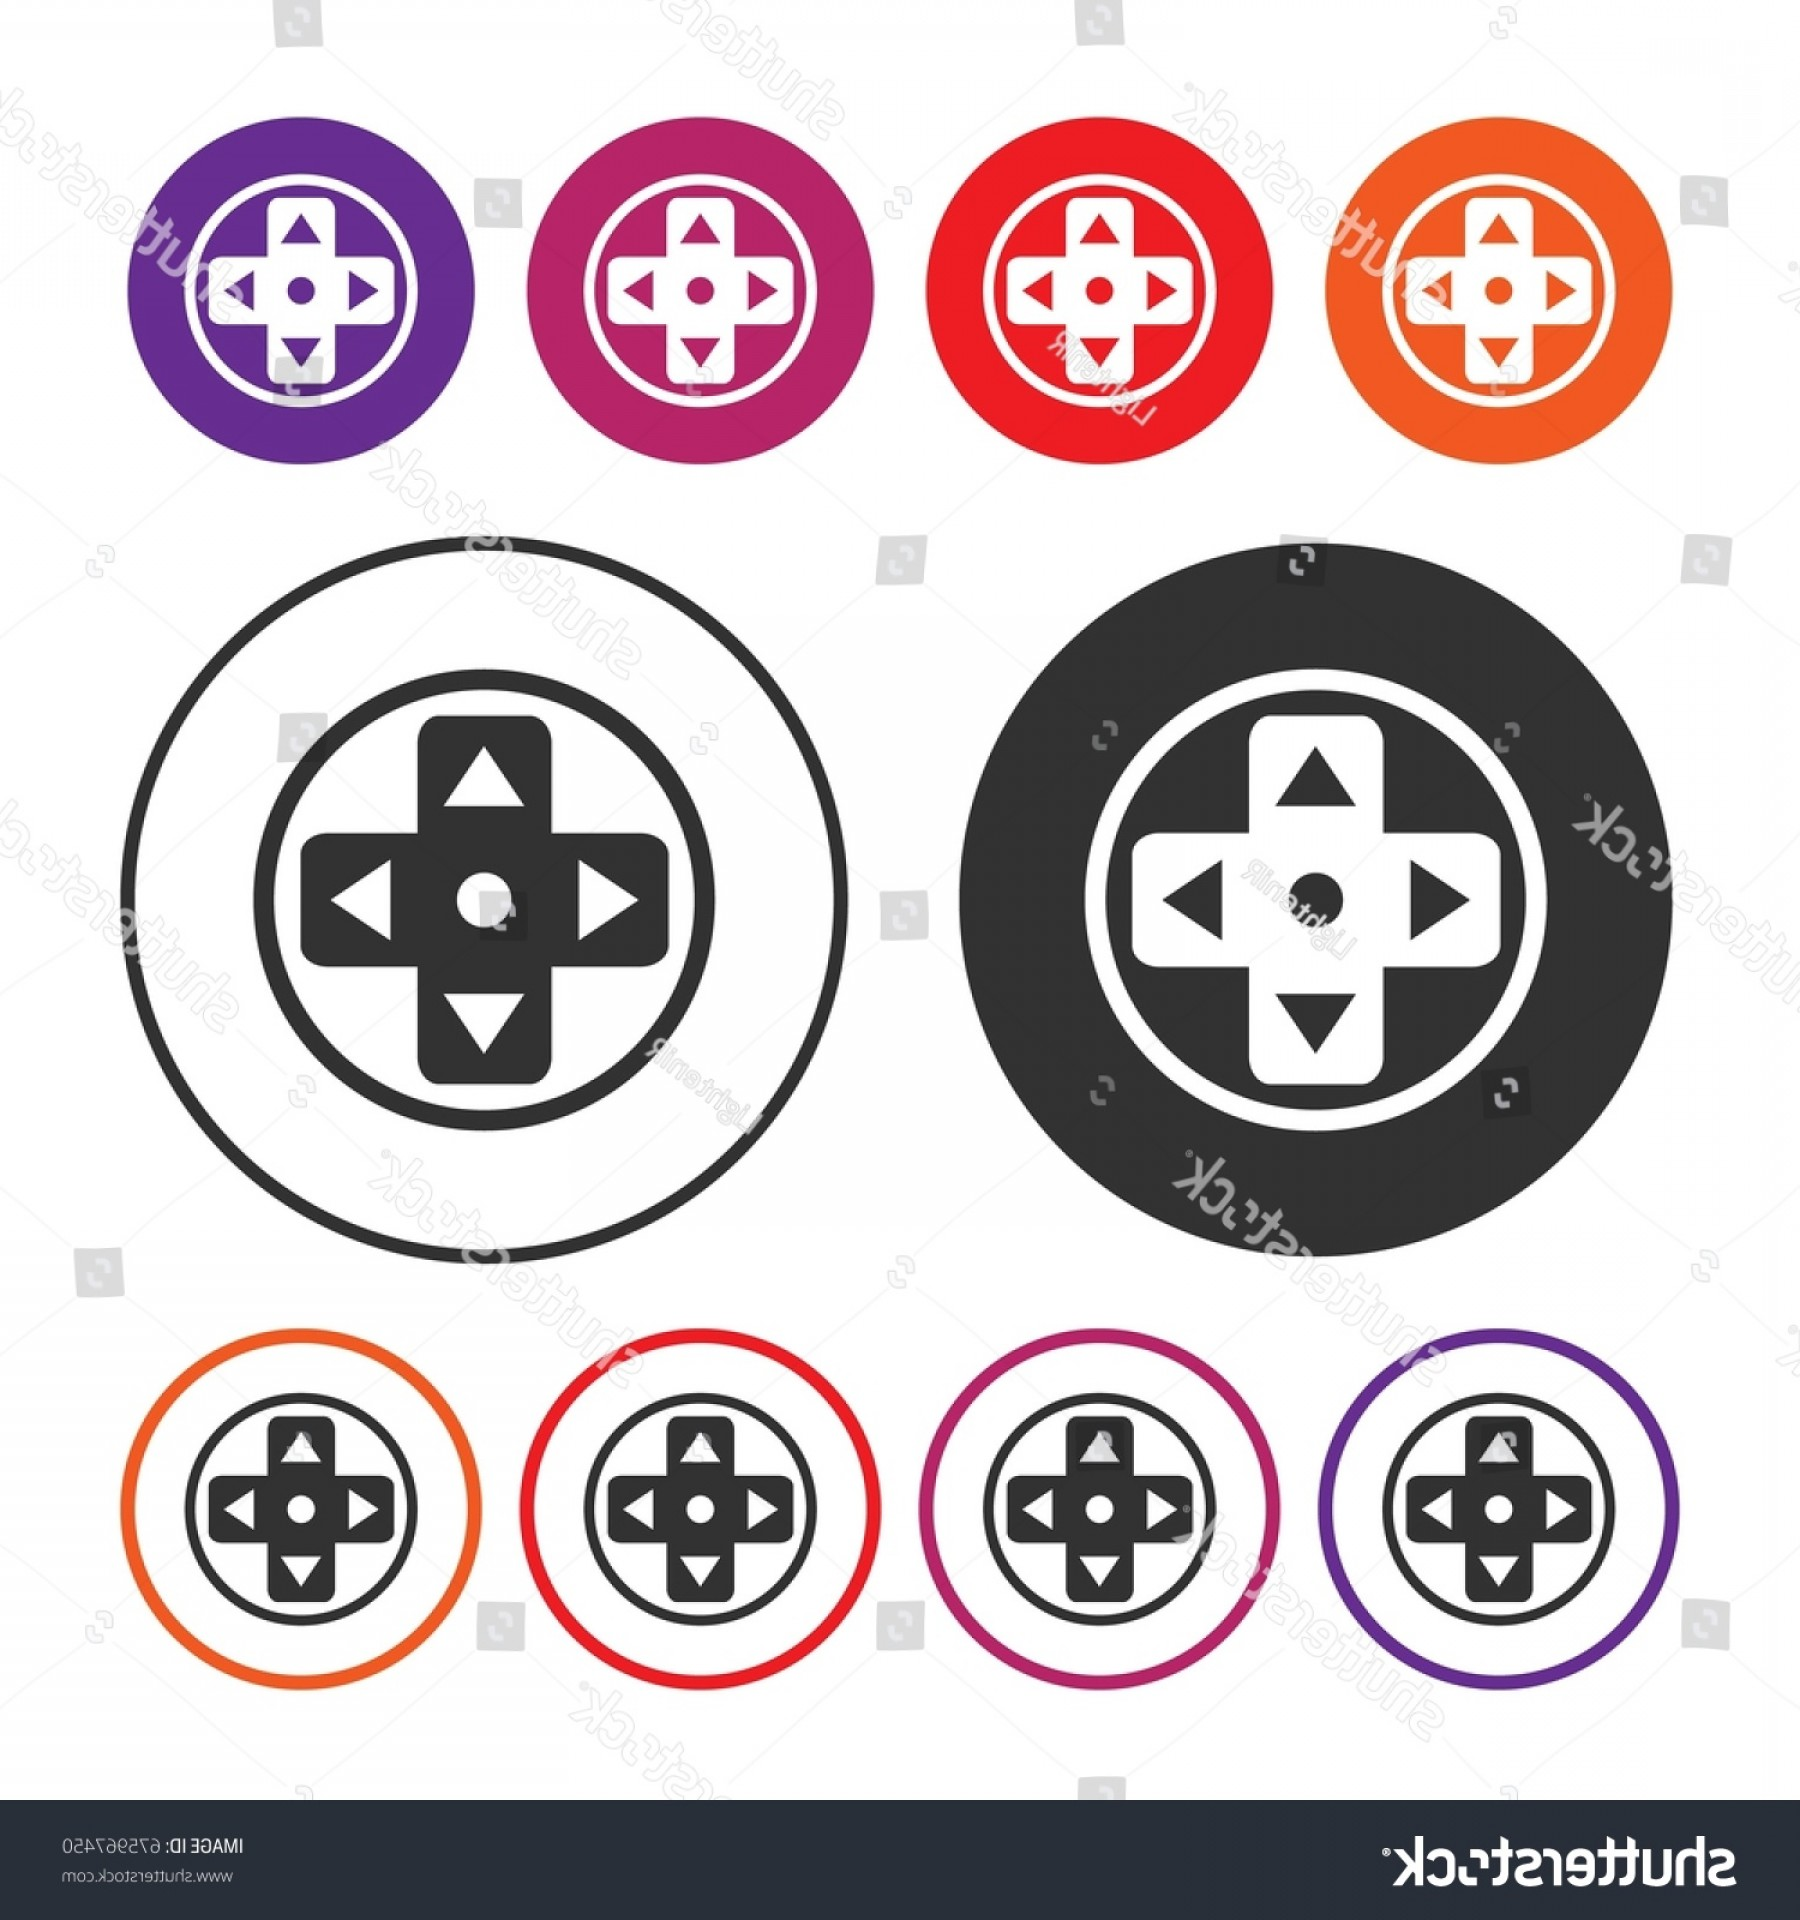 Button Icon Vector: Game Controller Button Icon Joystick Vector